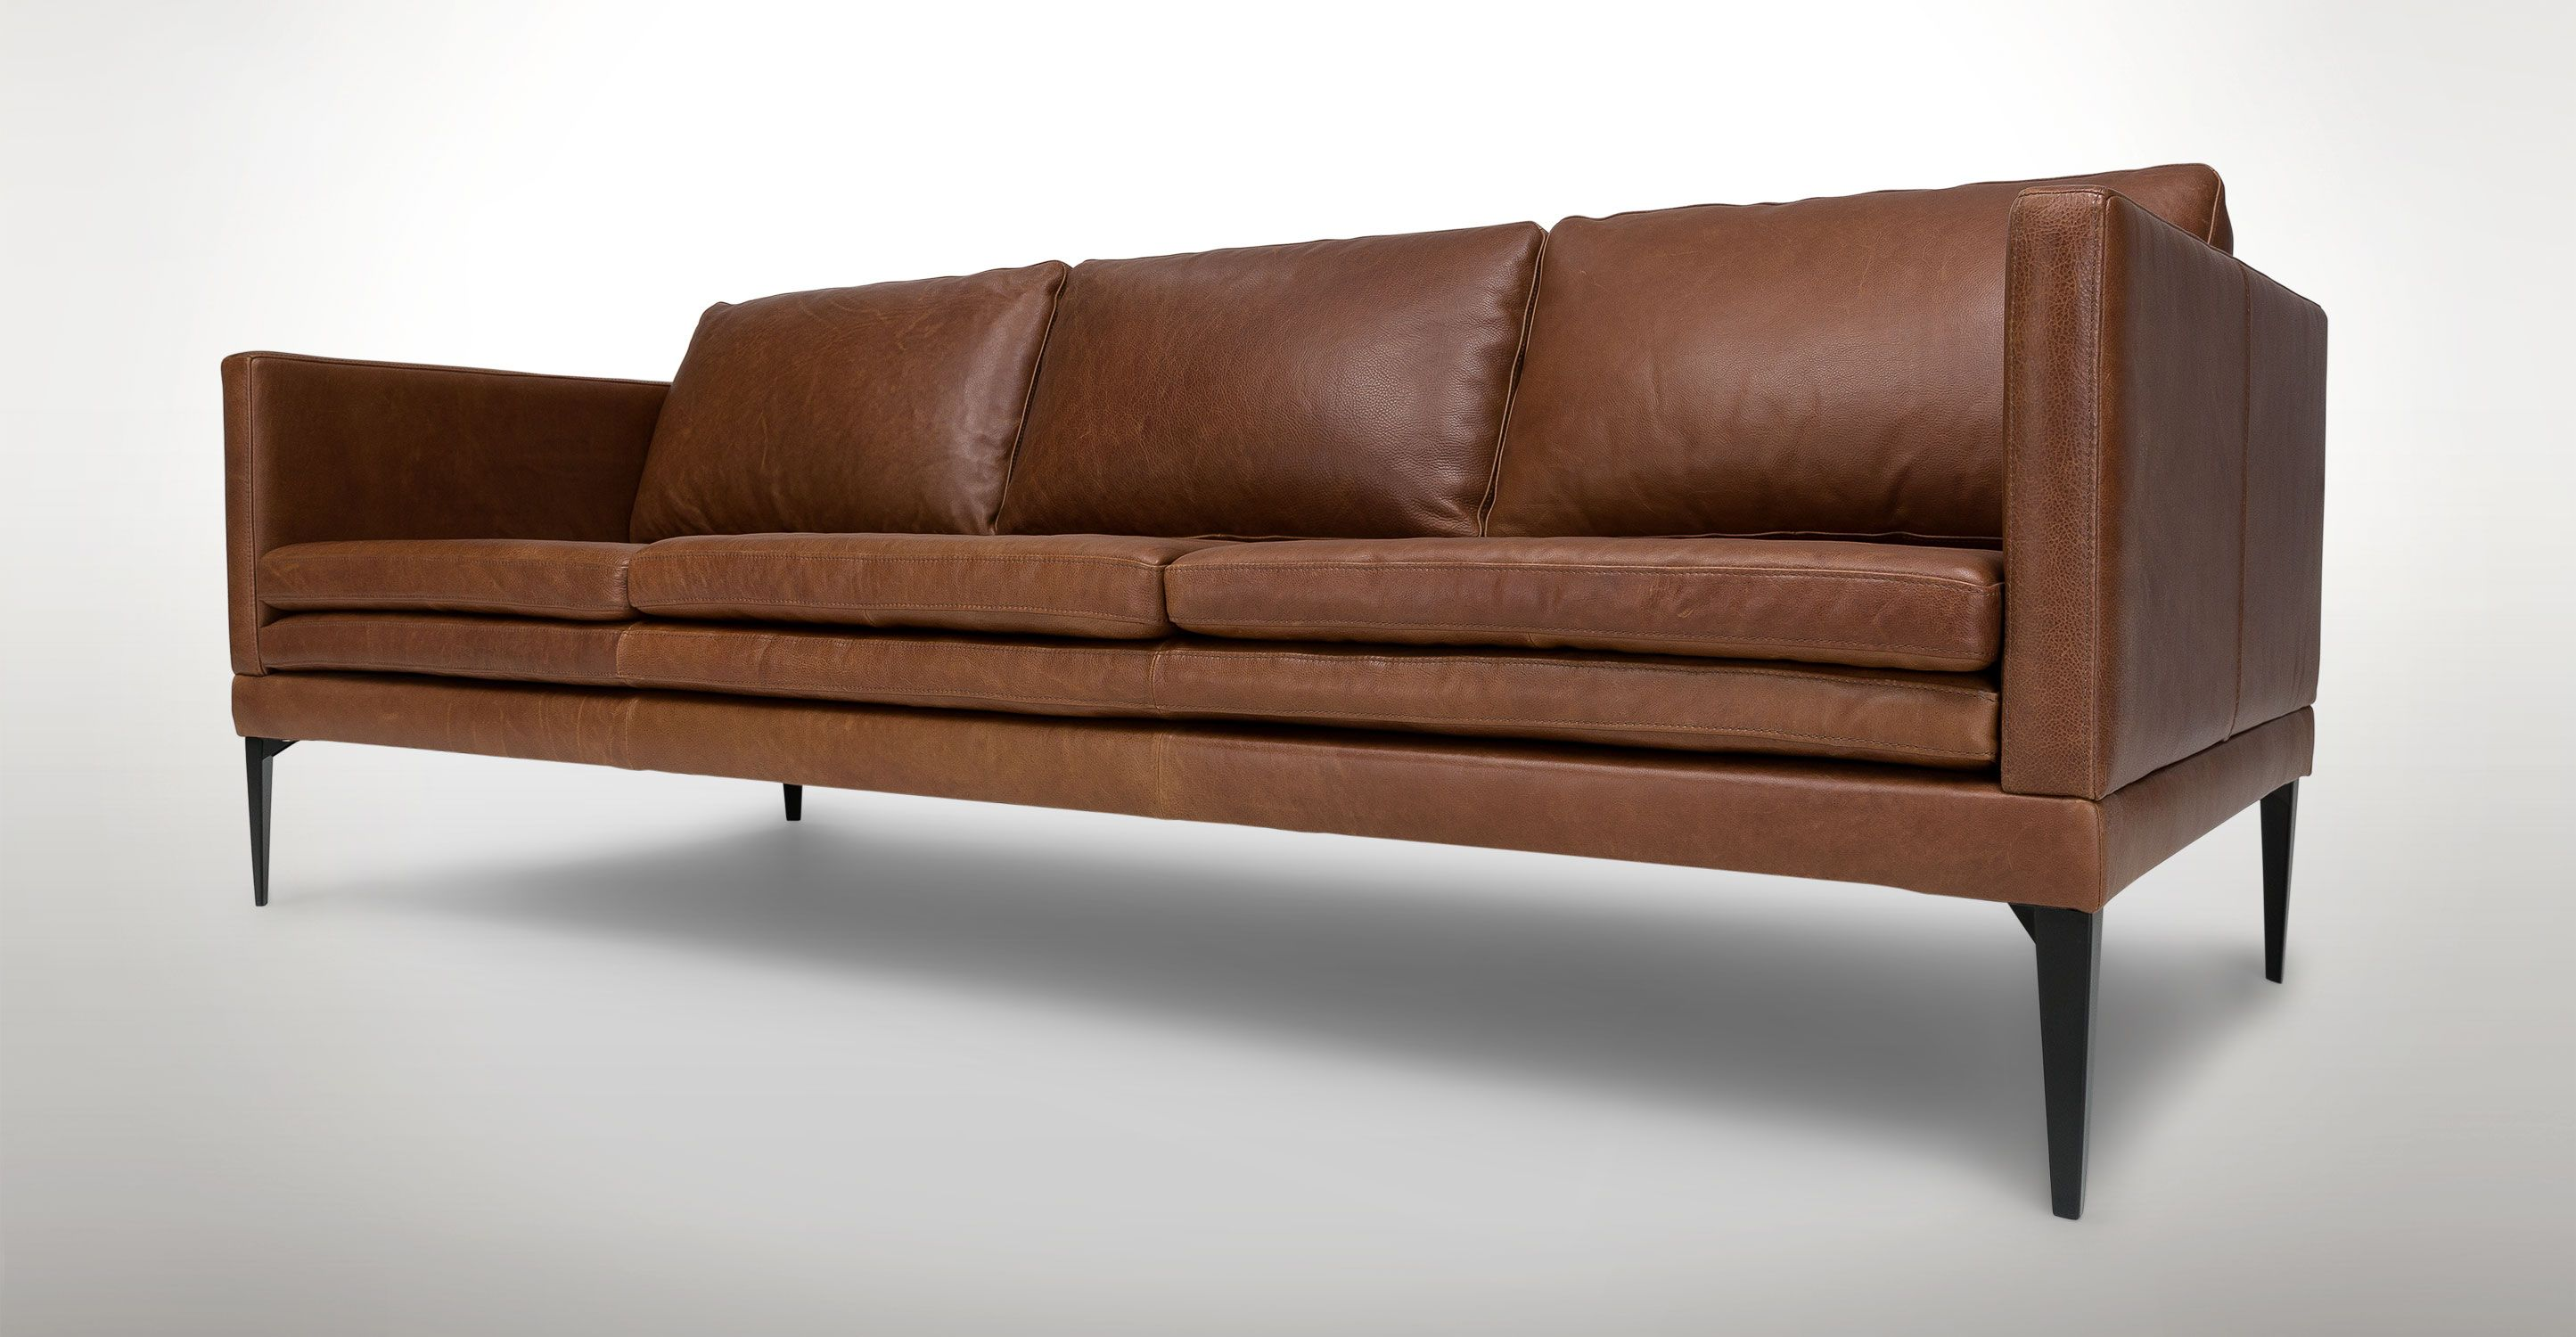 contemporary furniture sofa. triplo taos canyon brown sofa sofas article modern midcentury and contemporary furniture